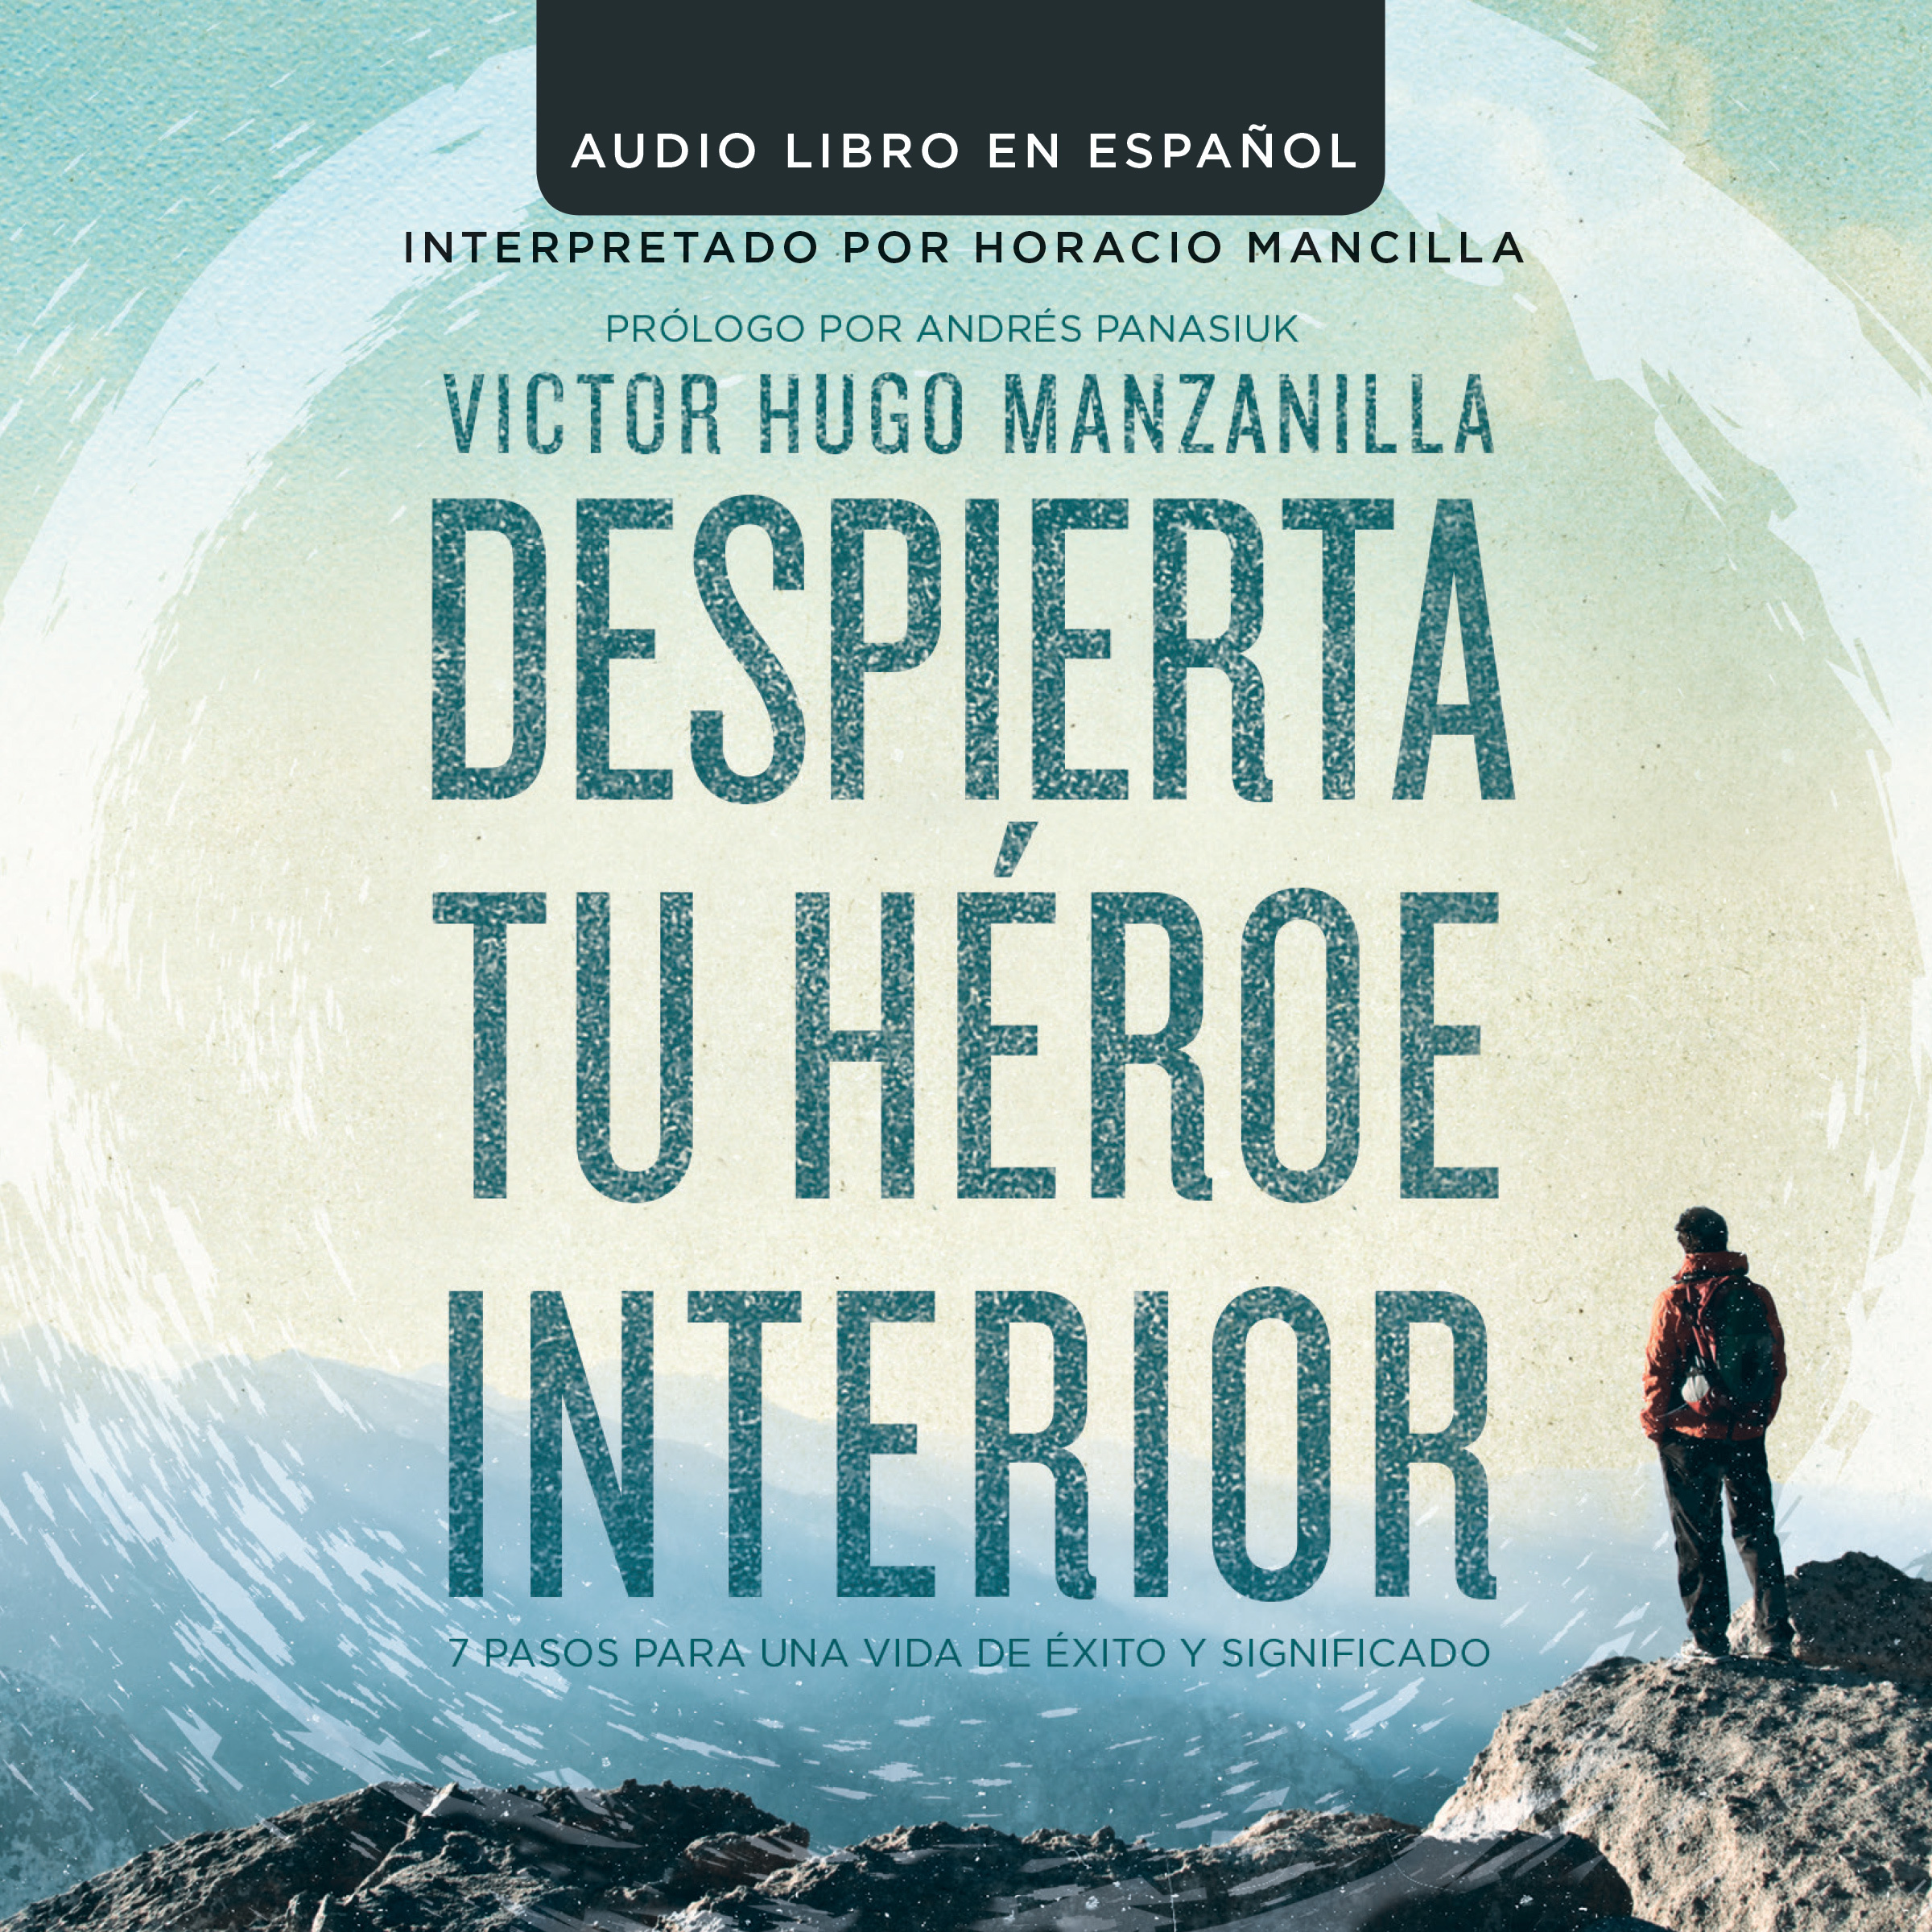 Printable Despierta tu héroe interior (Awaken Your Inner Hero Spanish Edition): 7 Pasos para una vida de Éxito y Significado Audiobook Cover Art